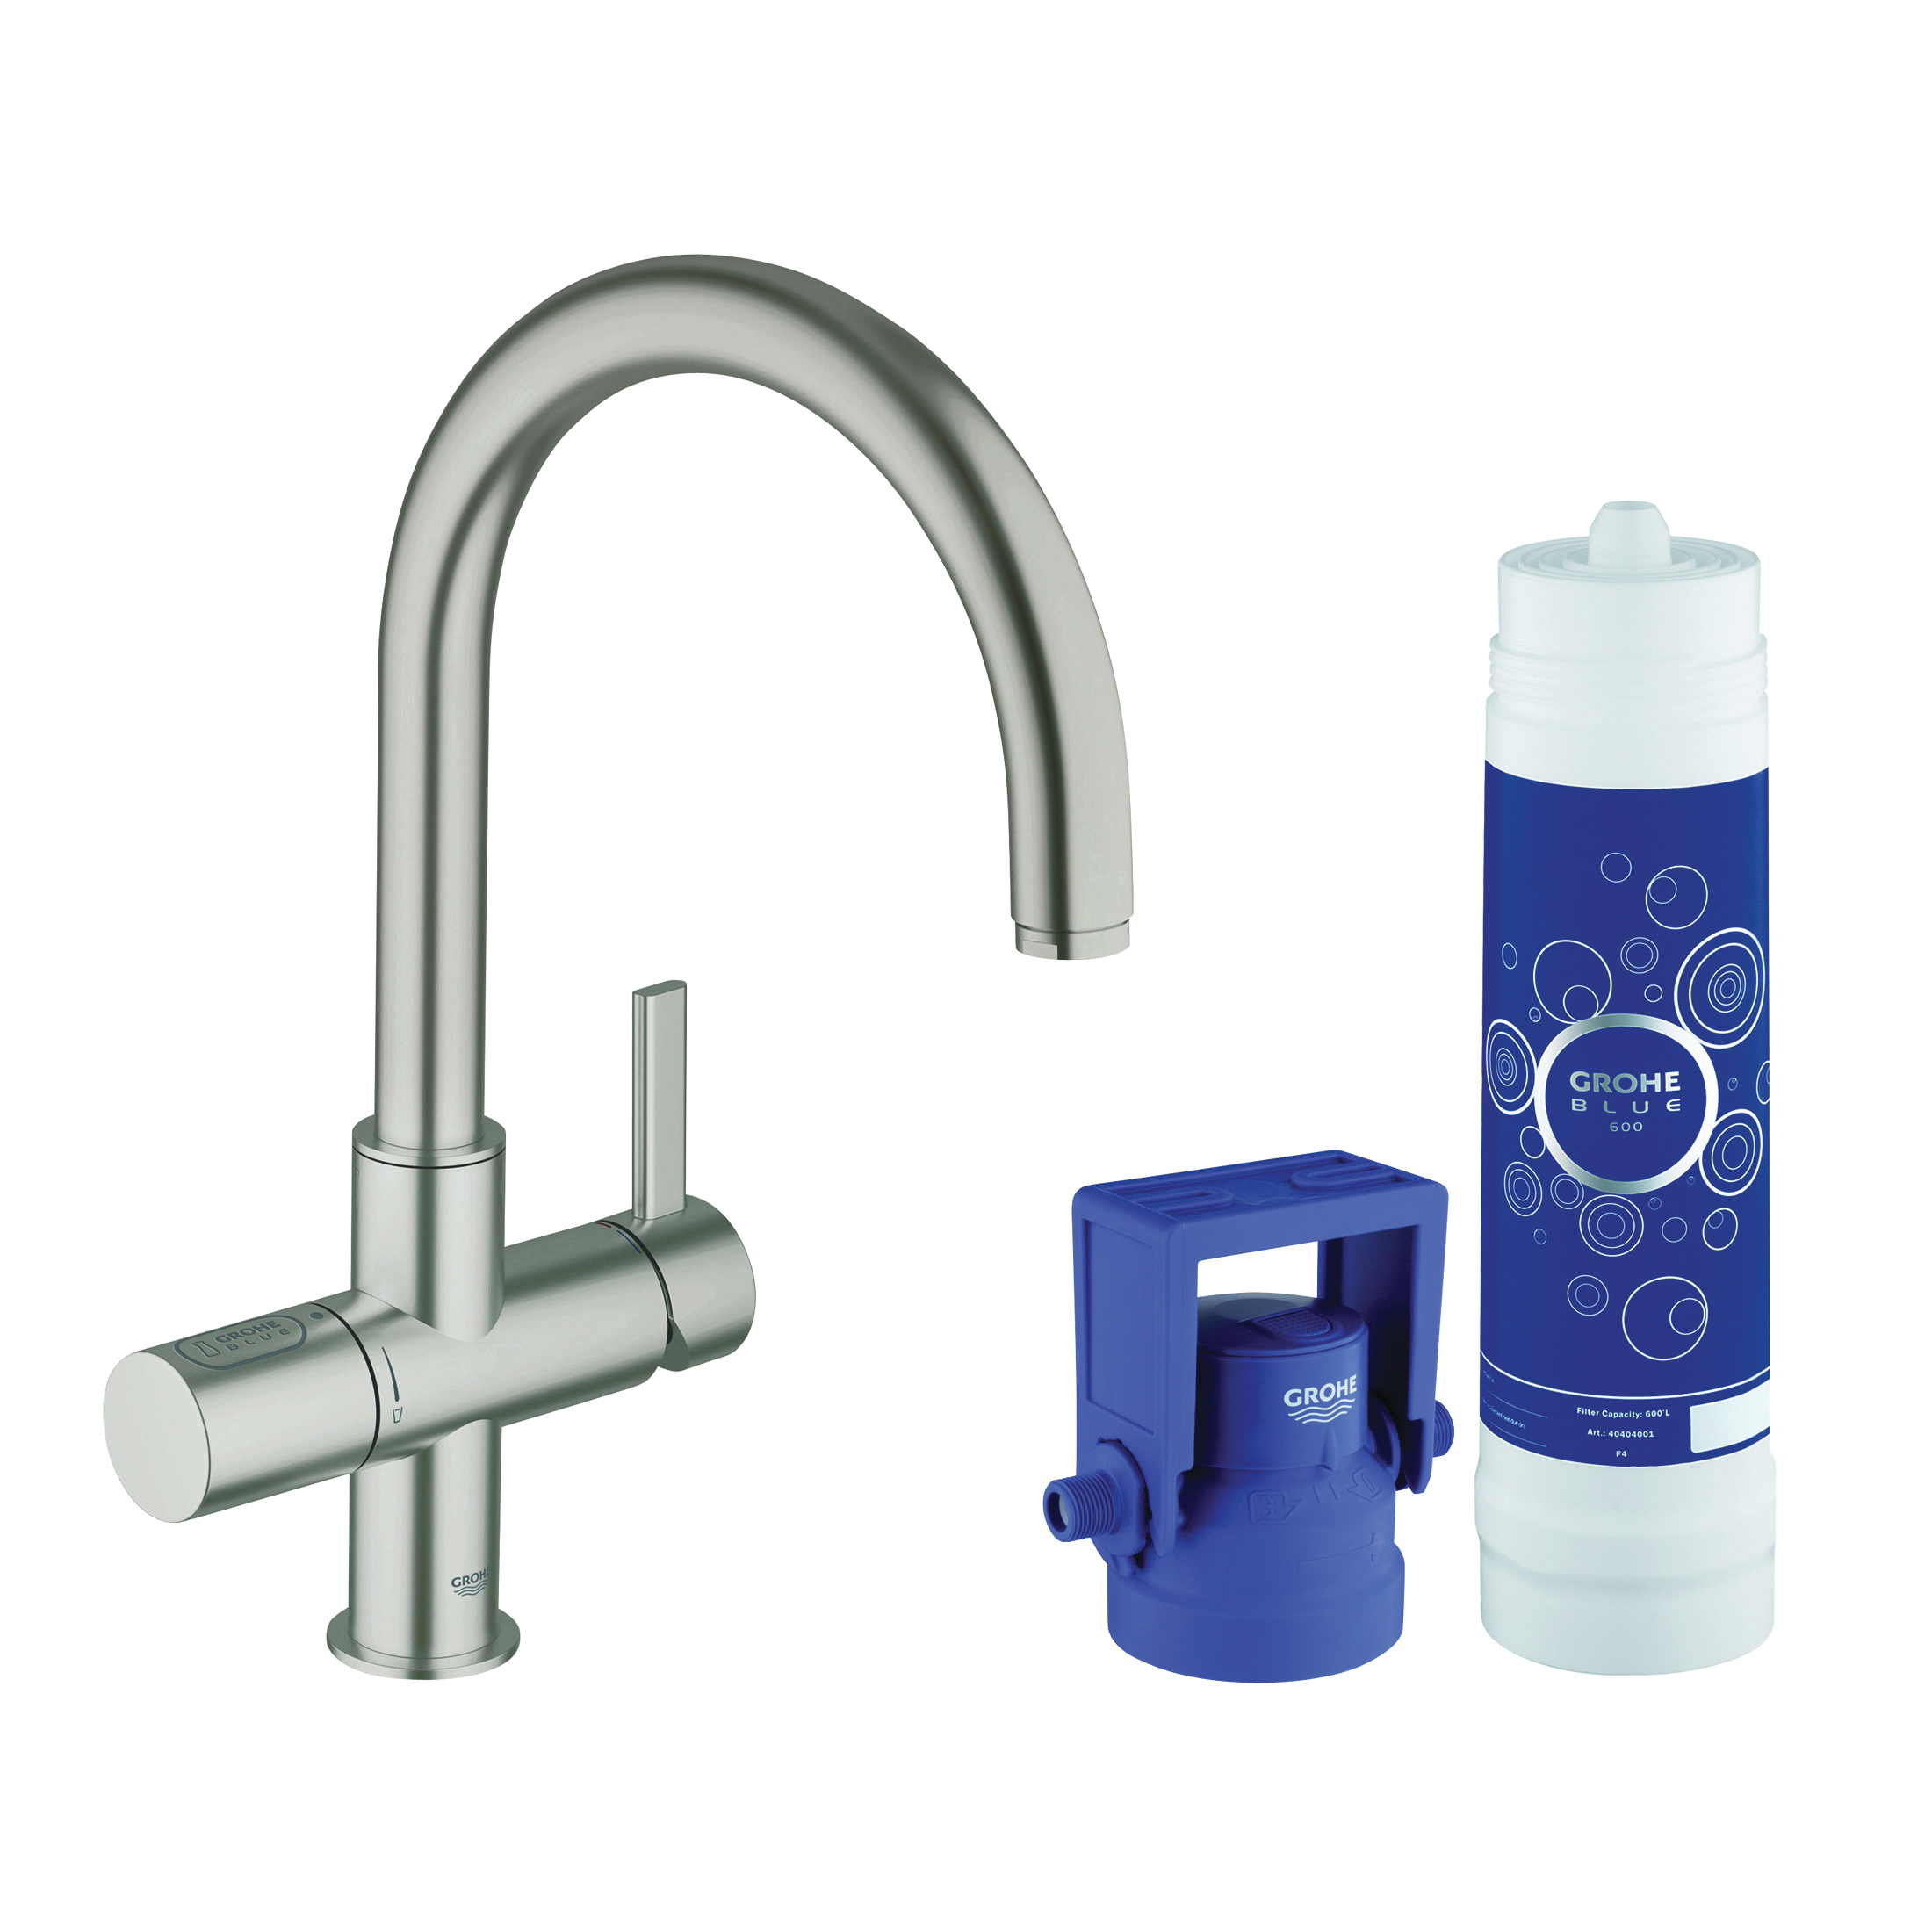 Consolidated Supply Co. | GROHE 31312DC1 GROHE Blue Pure Faucet and ...